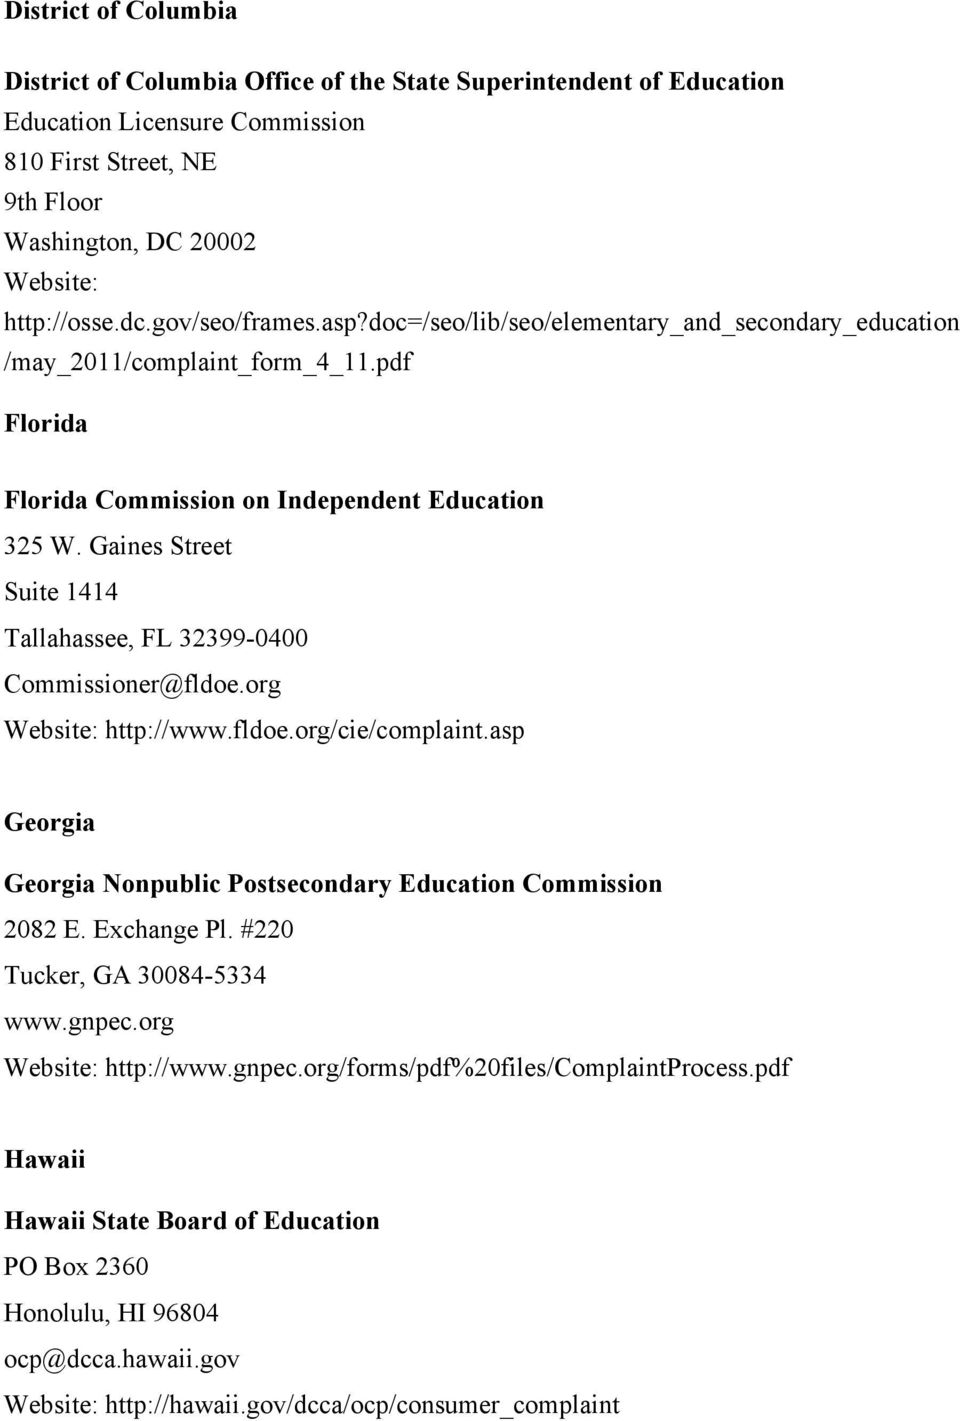 Gaines Street Suite 1414 Tallahassee, FL 32399-0400 Commissioner@fldoe.org http://www.fldoe.org/cie/complaint.asp Georgia Georgia Nonpublic Postsecondary Education Commission 2082 E. Exchange Pl.